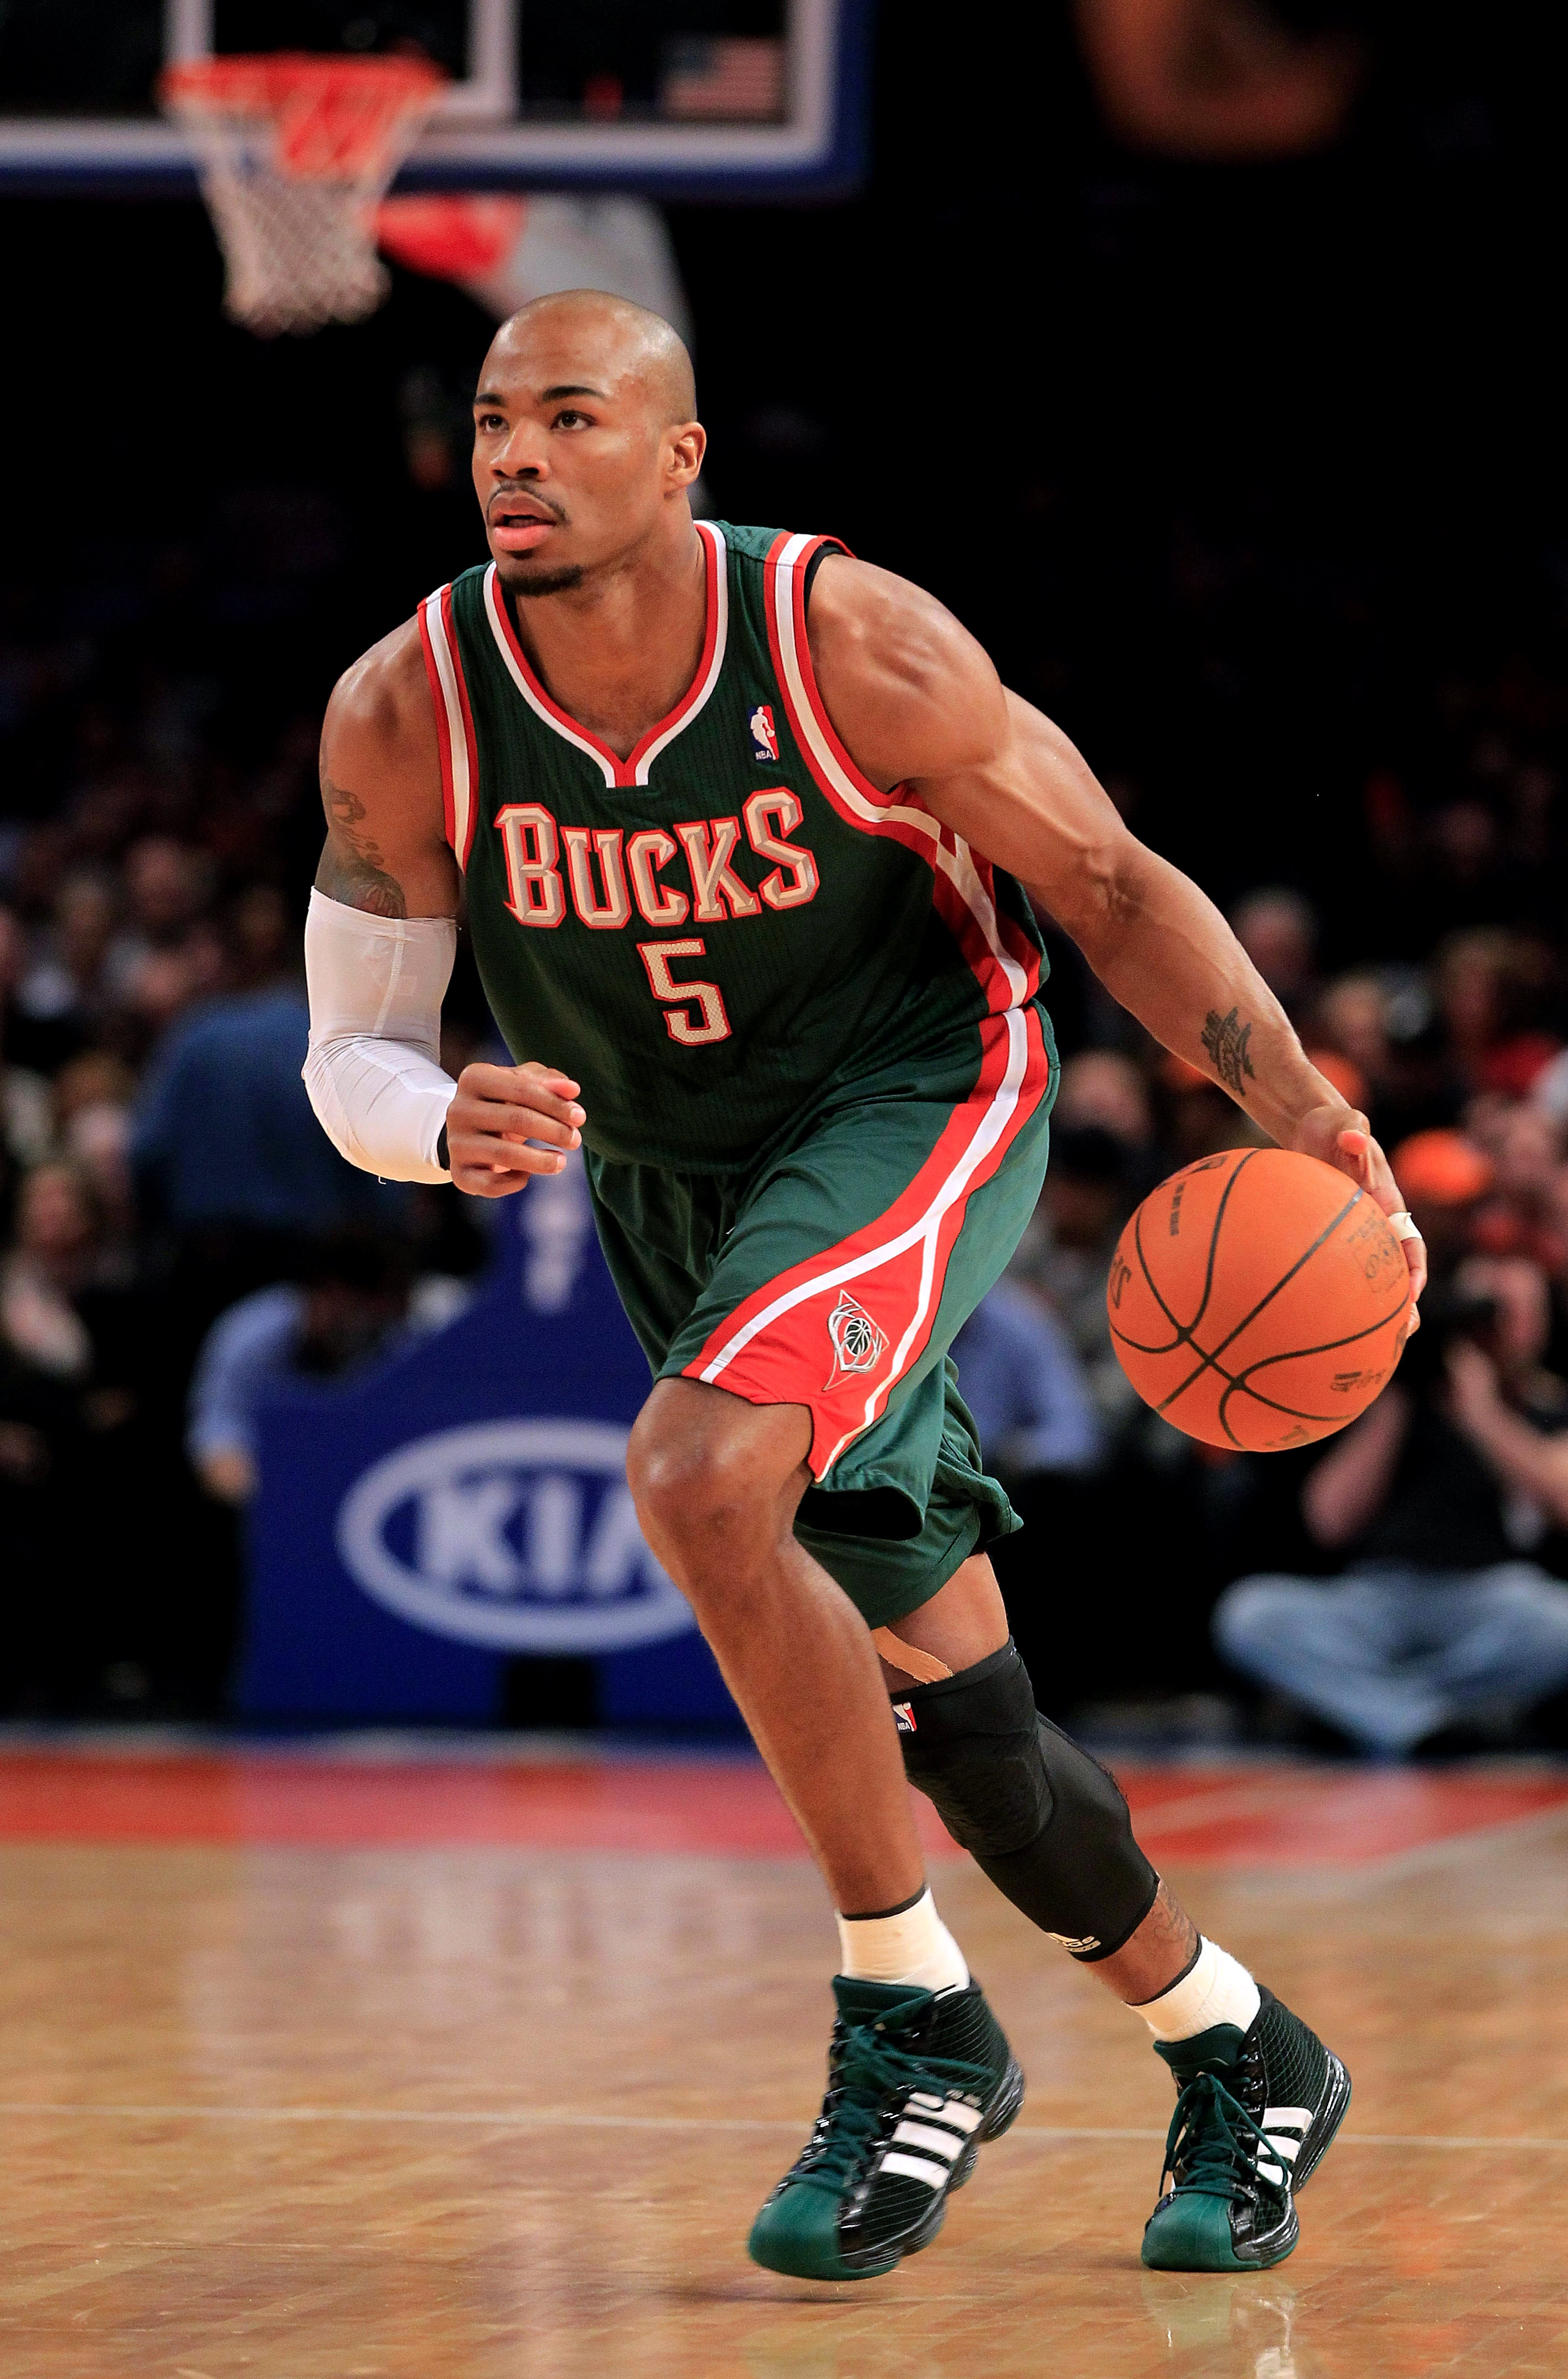 NEW YORK, NY - FEBRUARY 23: Corey Maggette #5 of the Milwaukee Bucks dribbles the ball against the New York Knicks at Madison Square Garden on February 23, 2011 in New York City. NOTE TO USER: User expressly acknowledges and agrees that, by downloading an